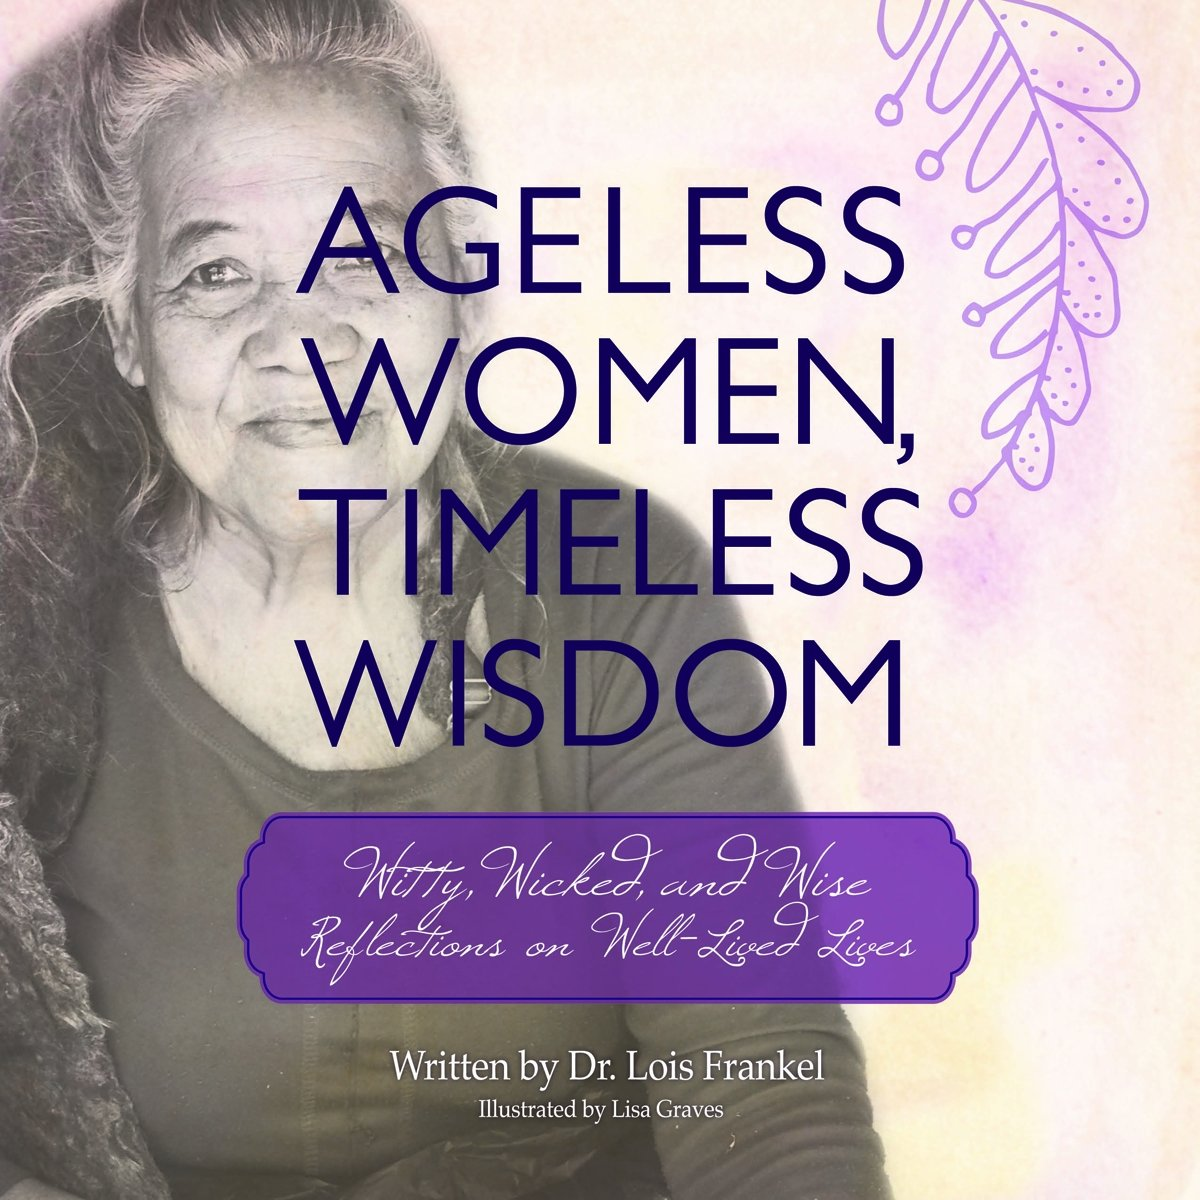 Ageless Women, Timeless Wisdom: Witty, Wicked, and Wise